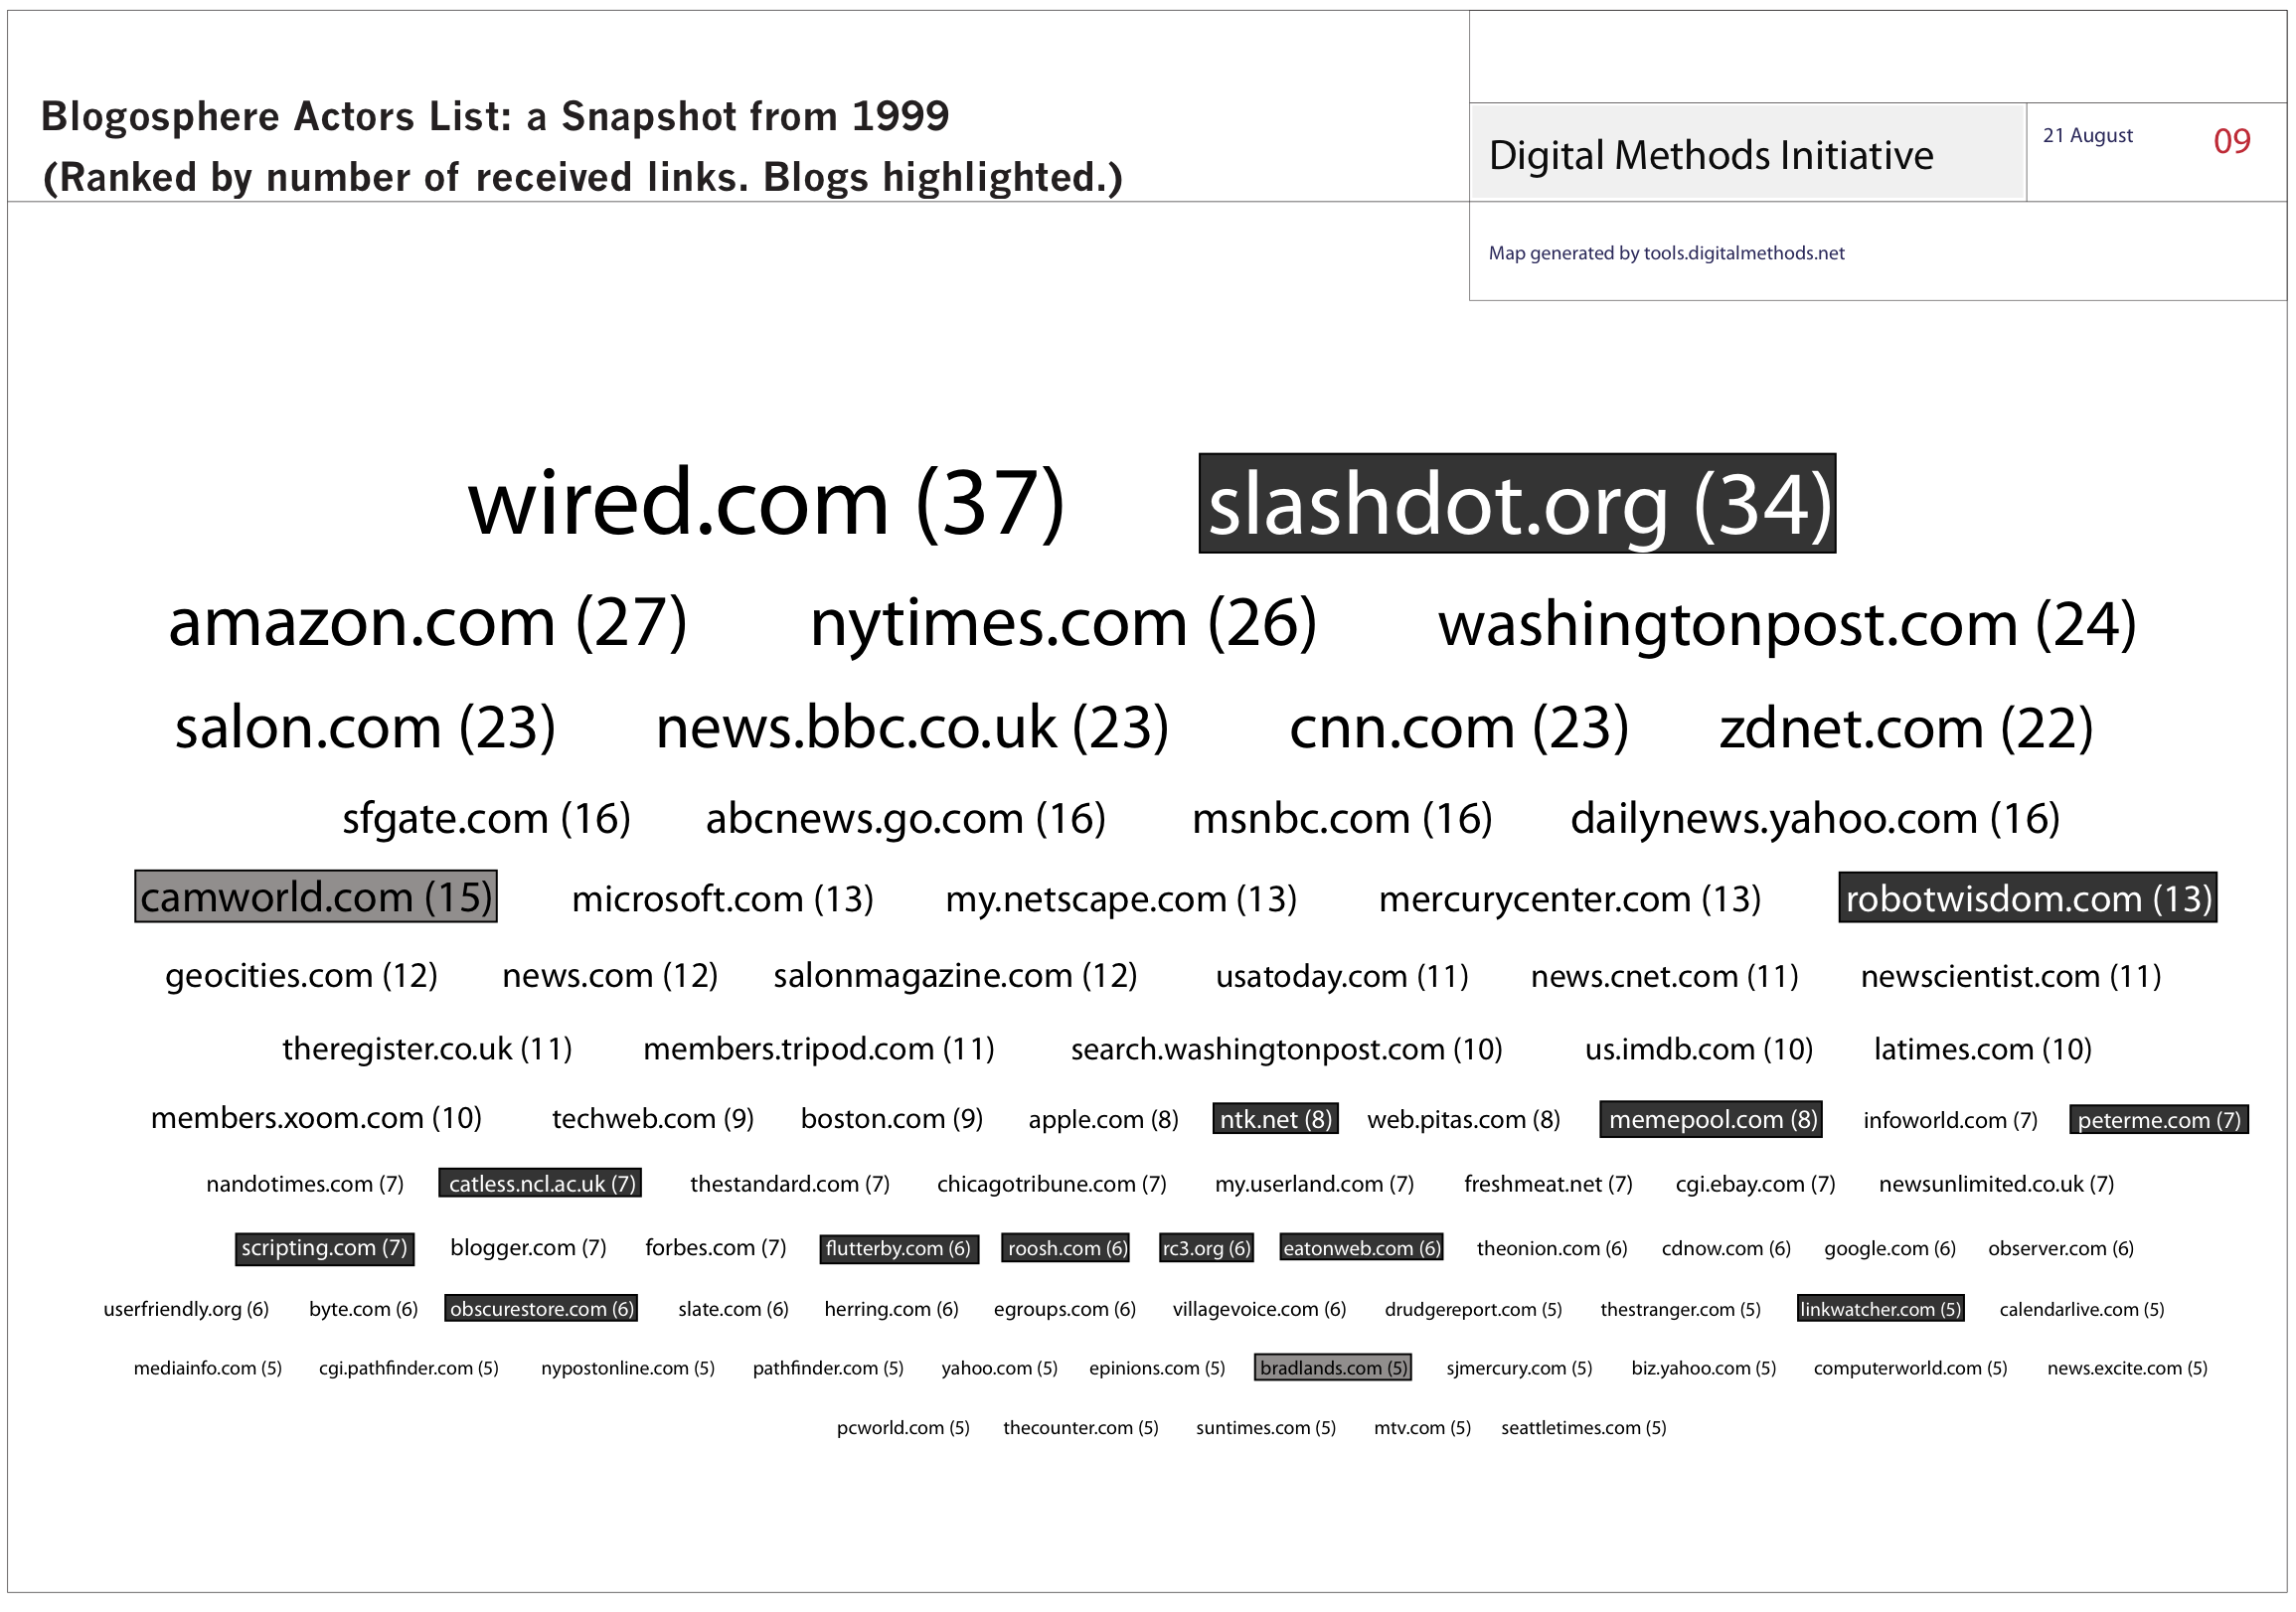 Blogosphere_Actors_List__a_Snapshot_from_1999v1.png